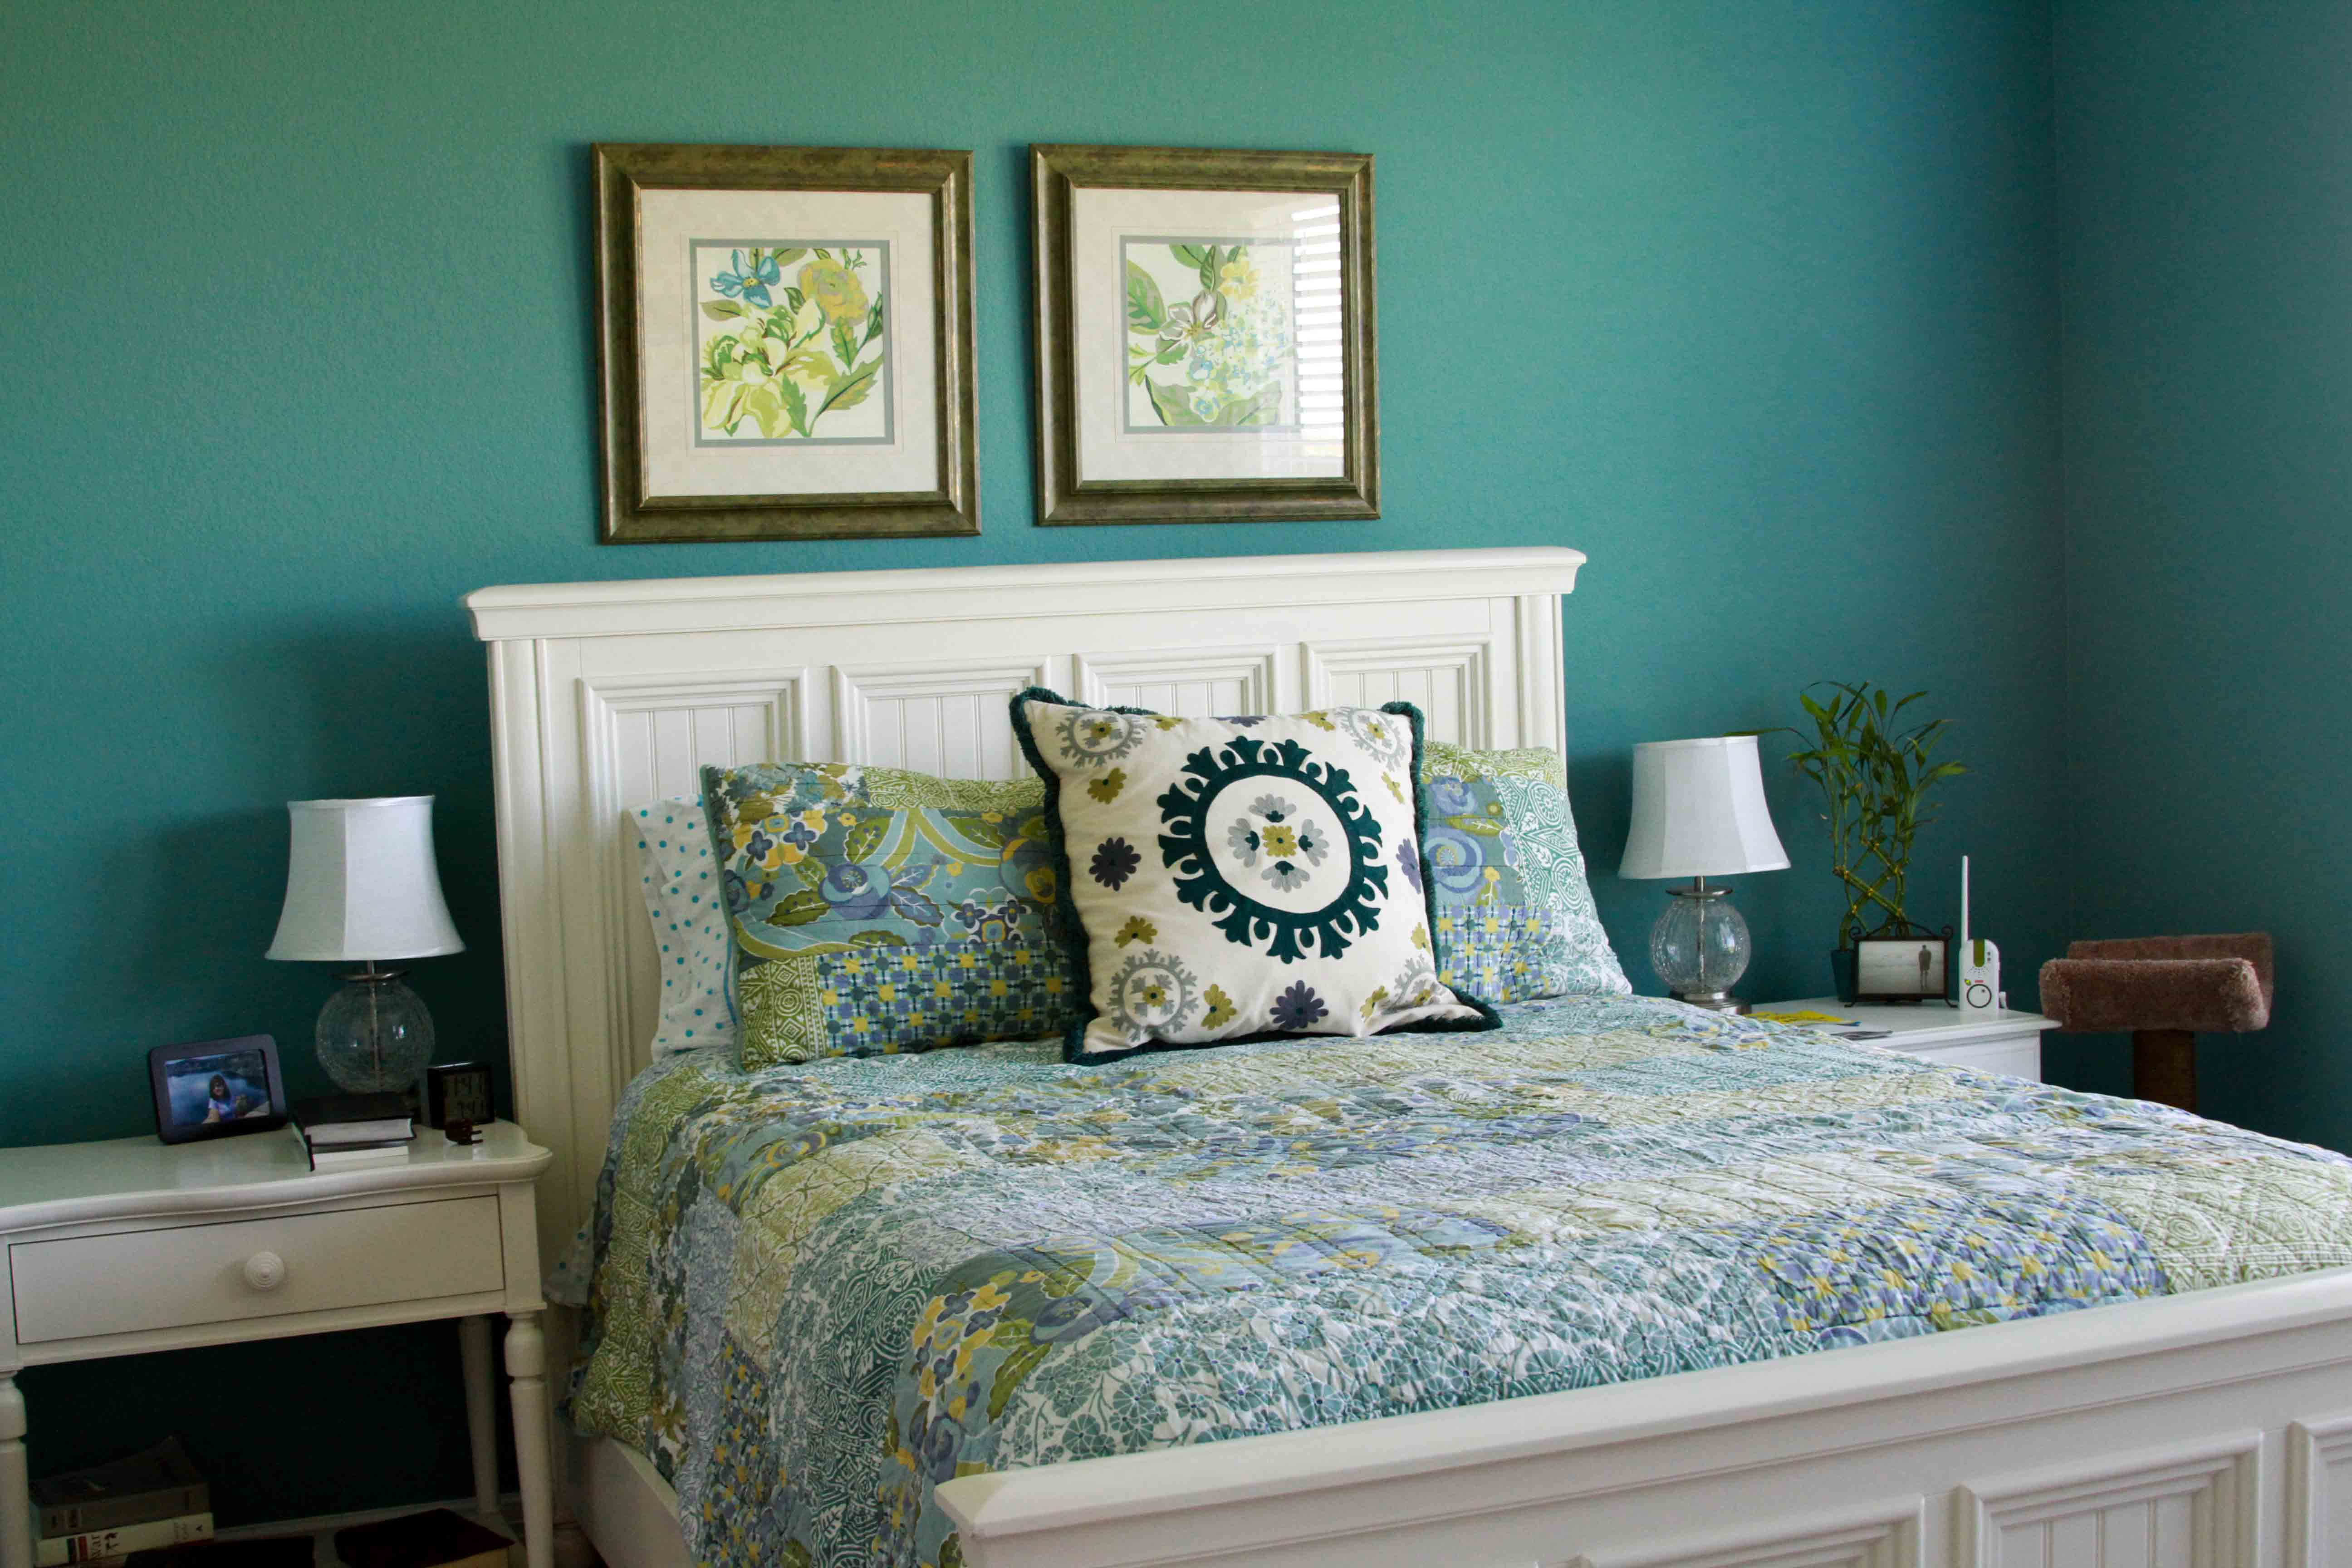 Is Mainly Different Shades Of Blue Some Dark Brown With Splashes Of Red Yellow And Green I Love Either Dark Brown Or White Cream Furniture